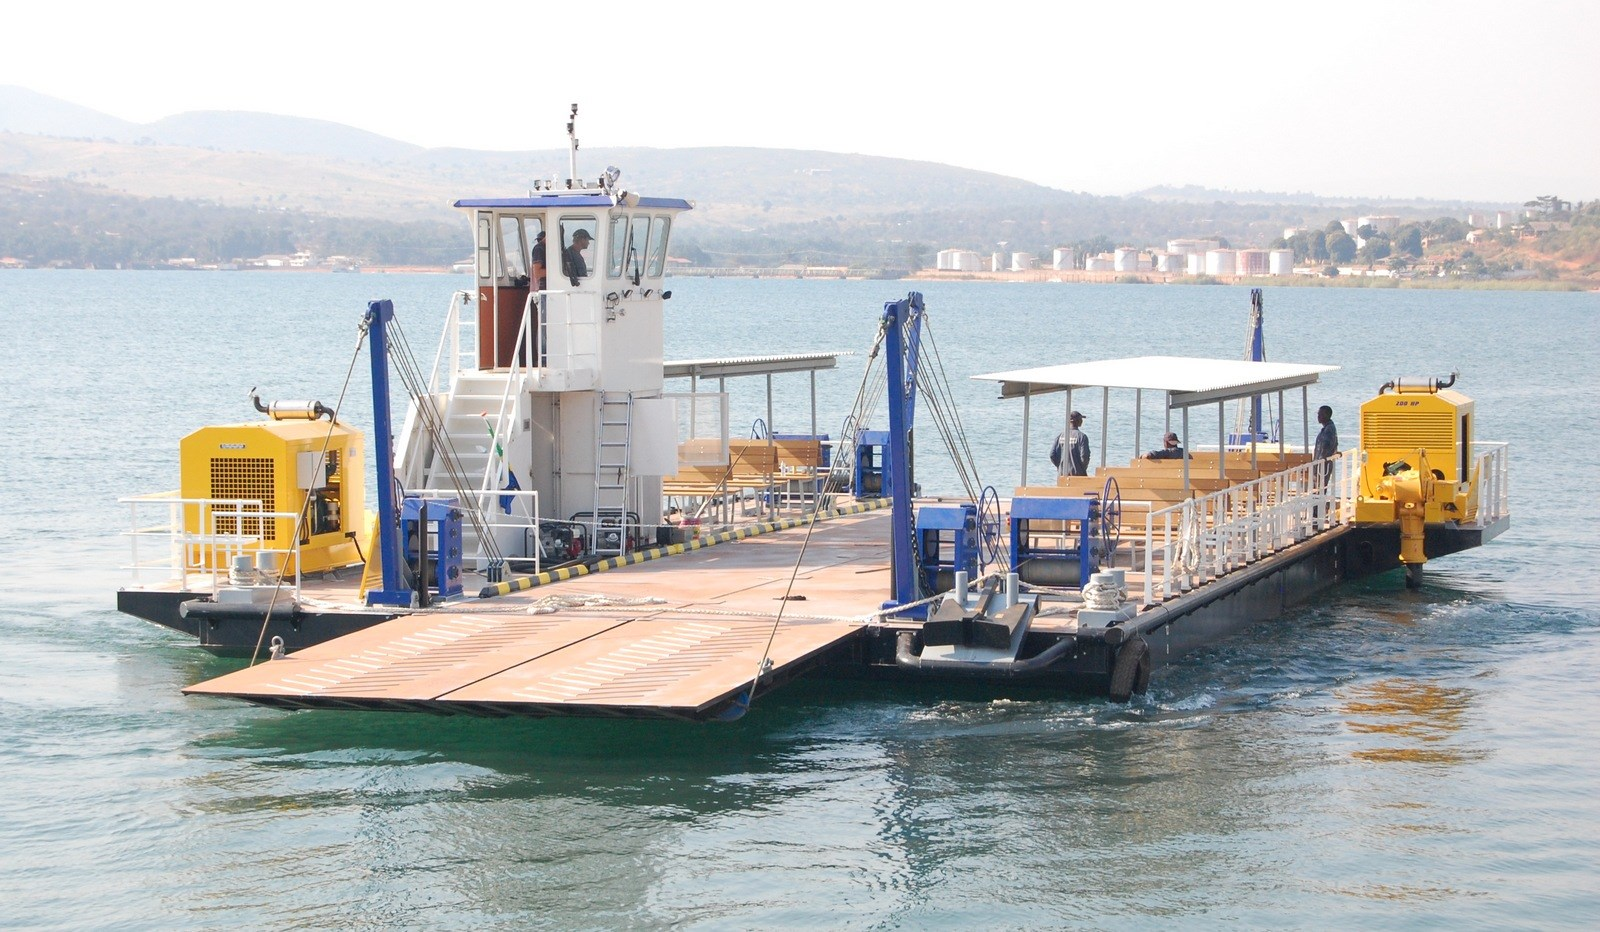 Small modular car ferry for safe & fast river crossing service